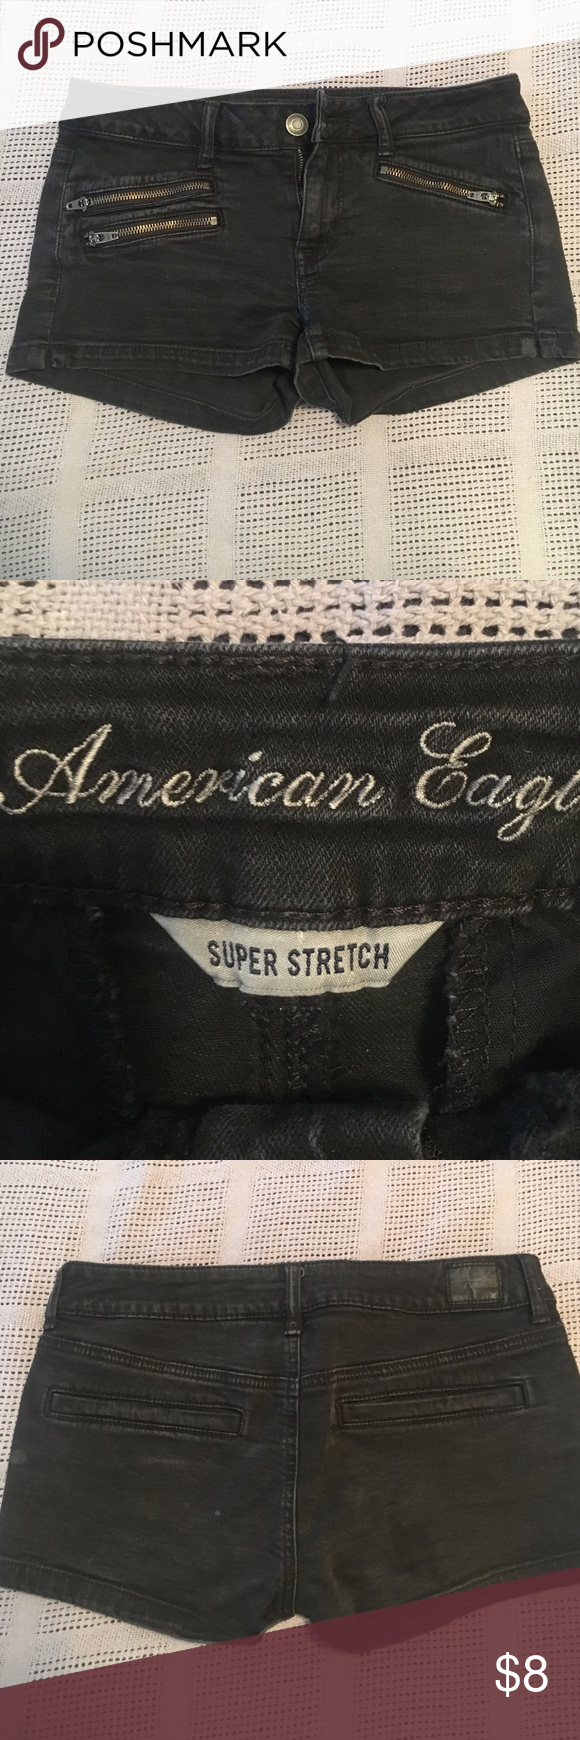 American eagle shorts Distressed black shorts with zipper pockets in front and regular in back, stretchy low to mid rise American Eagle Outfitters Shorts Jean Shorts